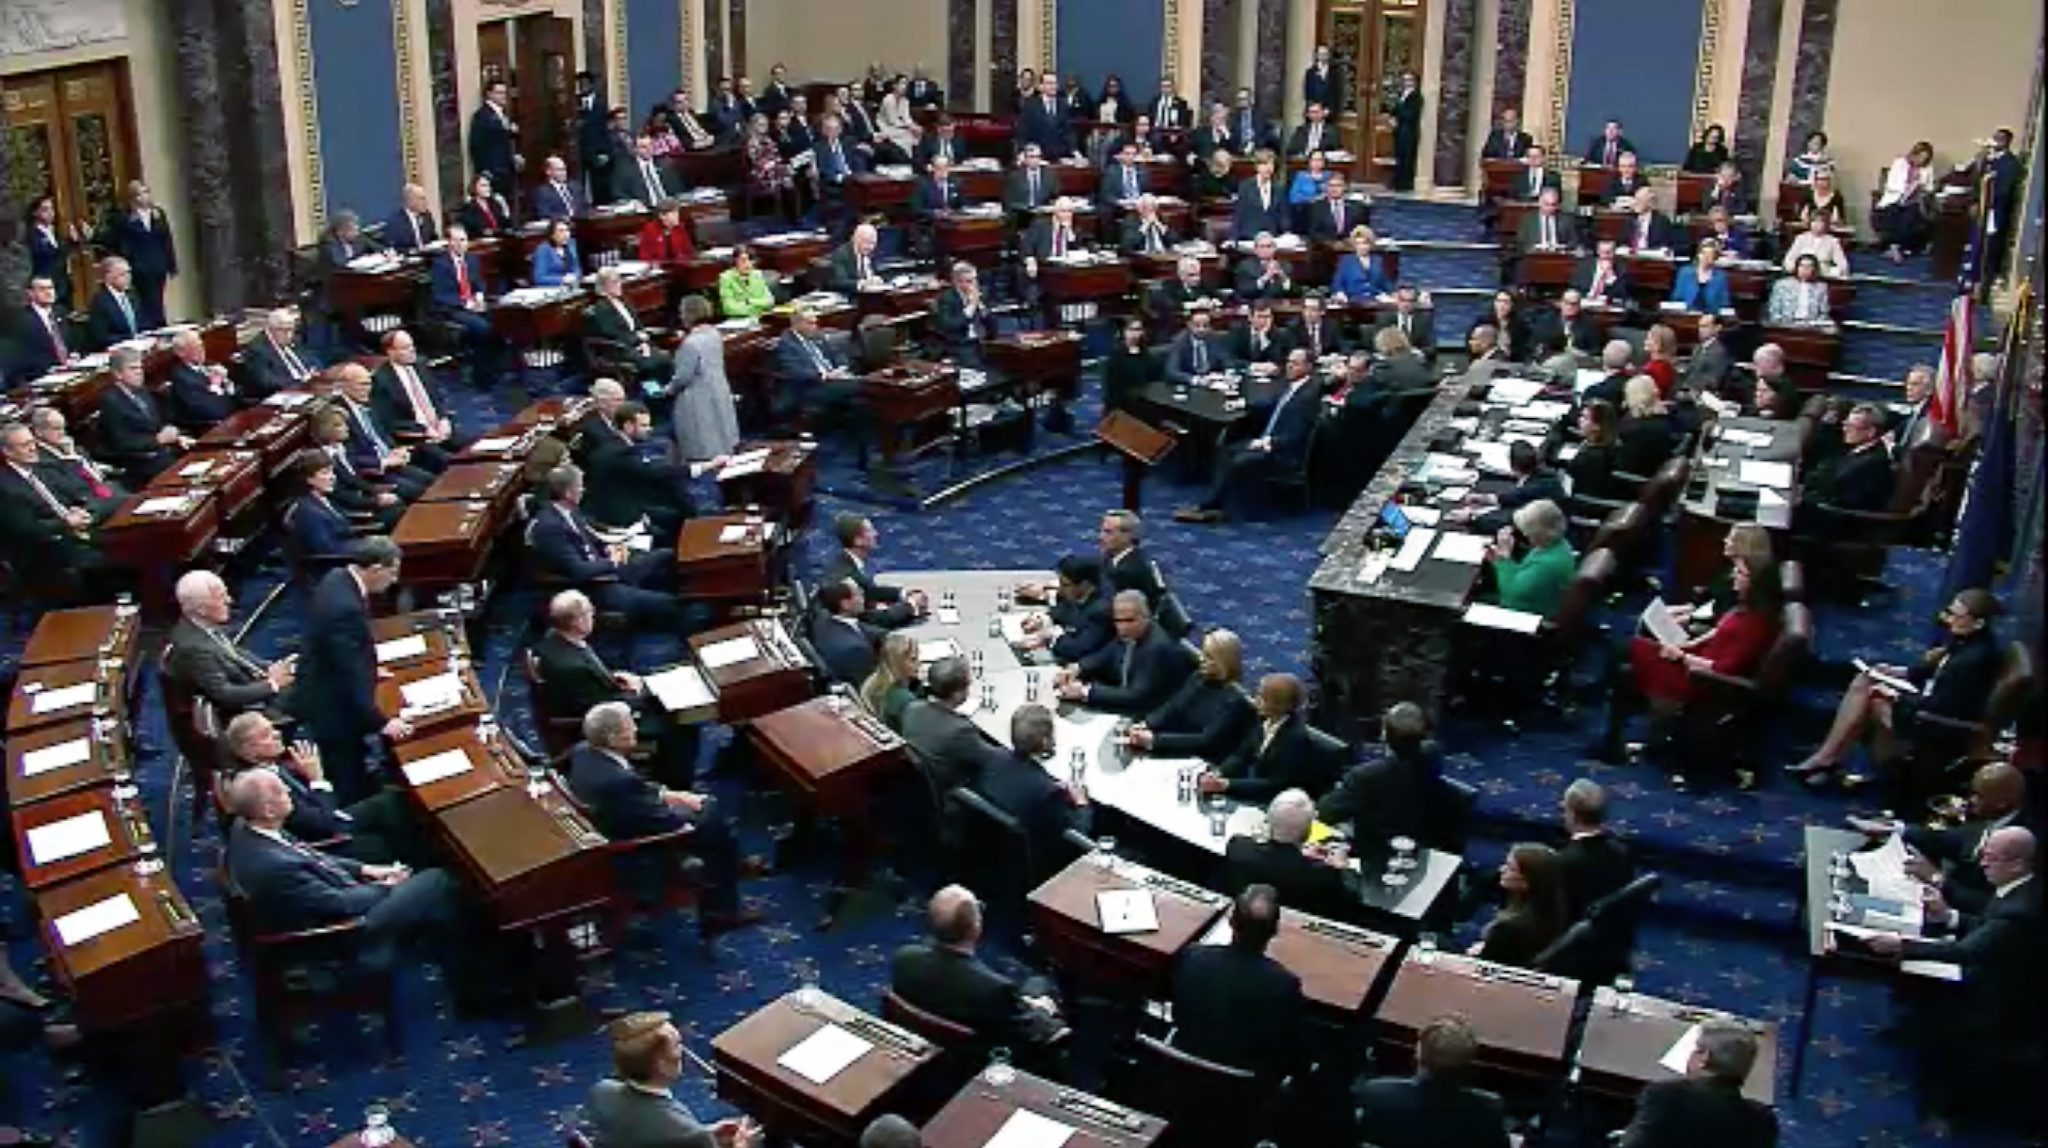 Trump Acquitted By Senate In Impeachment Trial - Washington